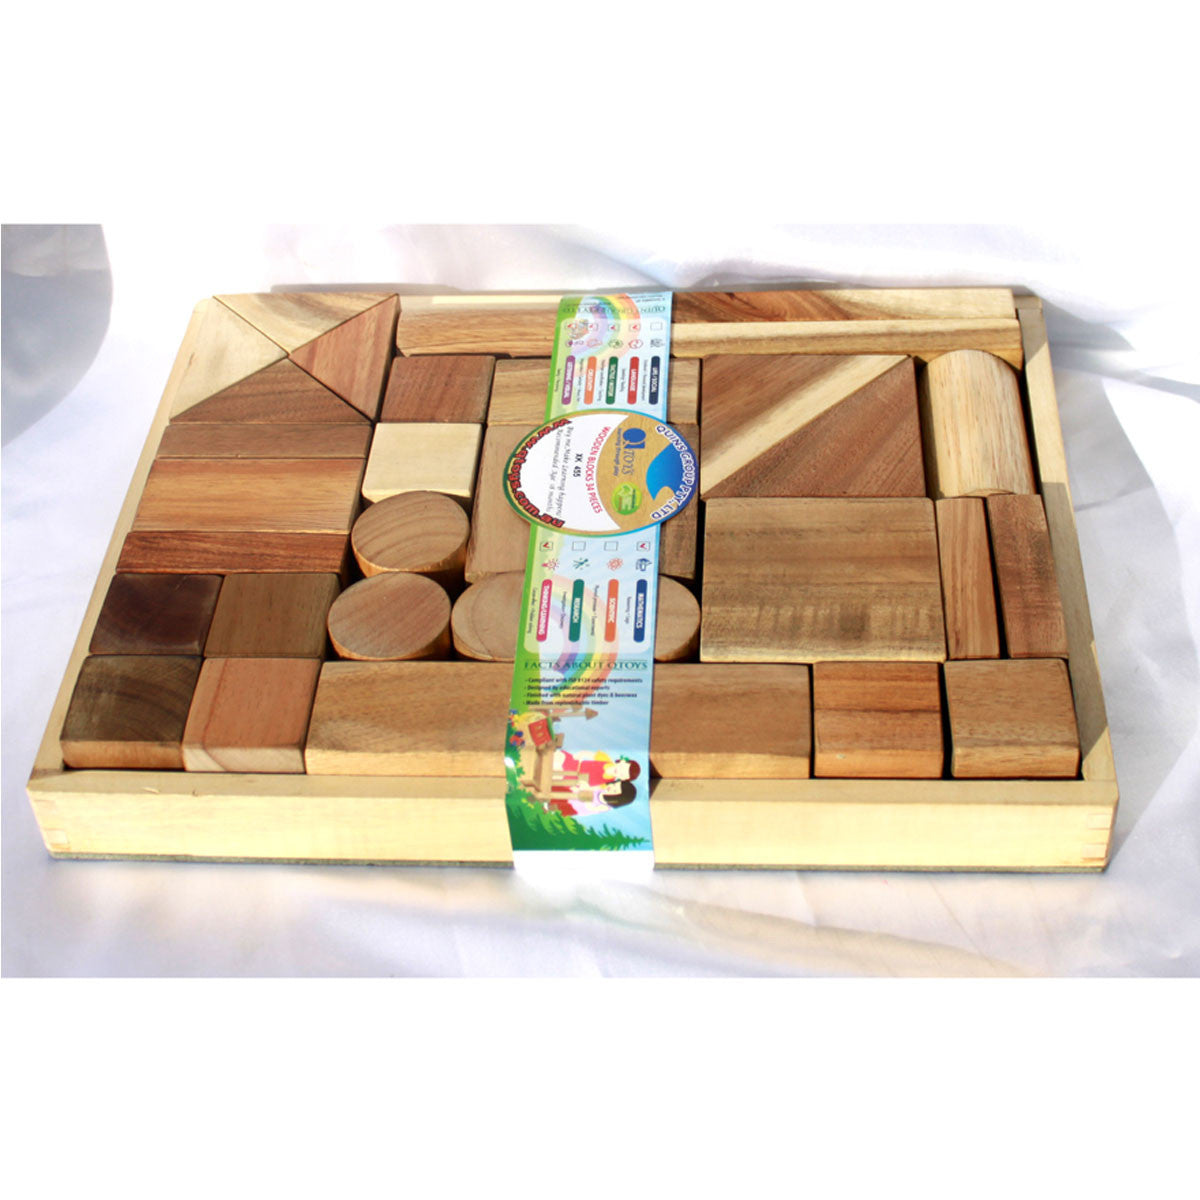 Qtoys Natural Building Block Set of 34 QToys Wooden Blocks at Little Earth Nest Eco Shop